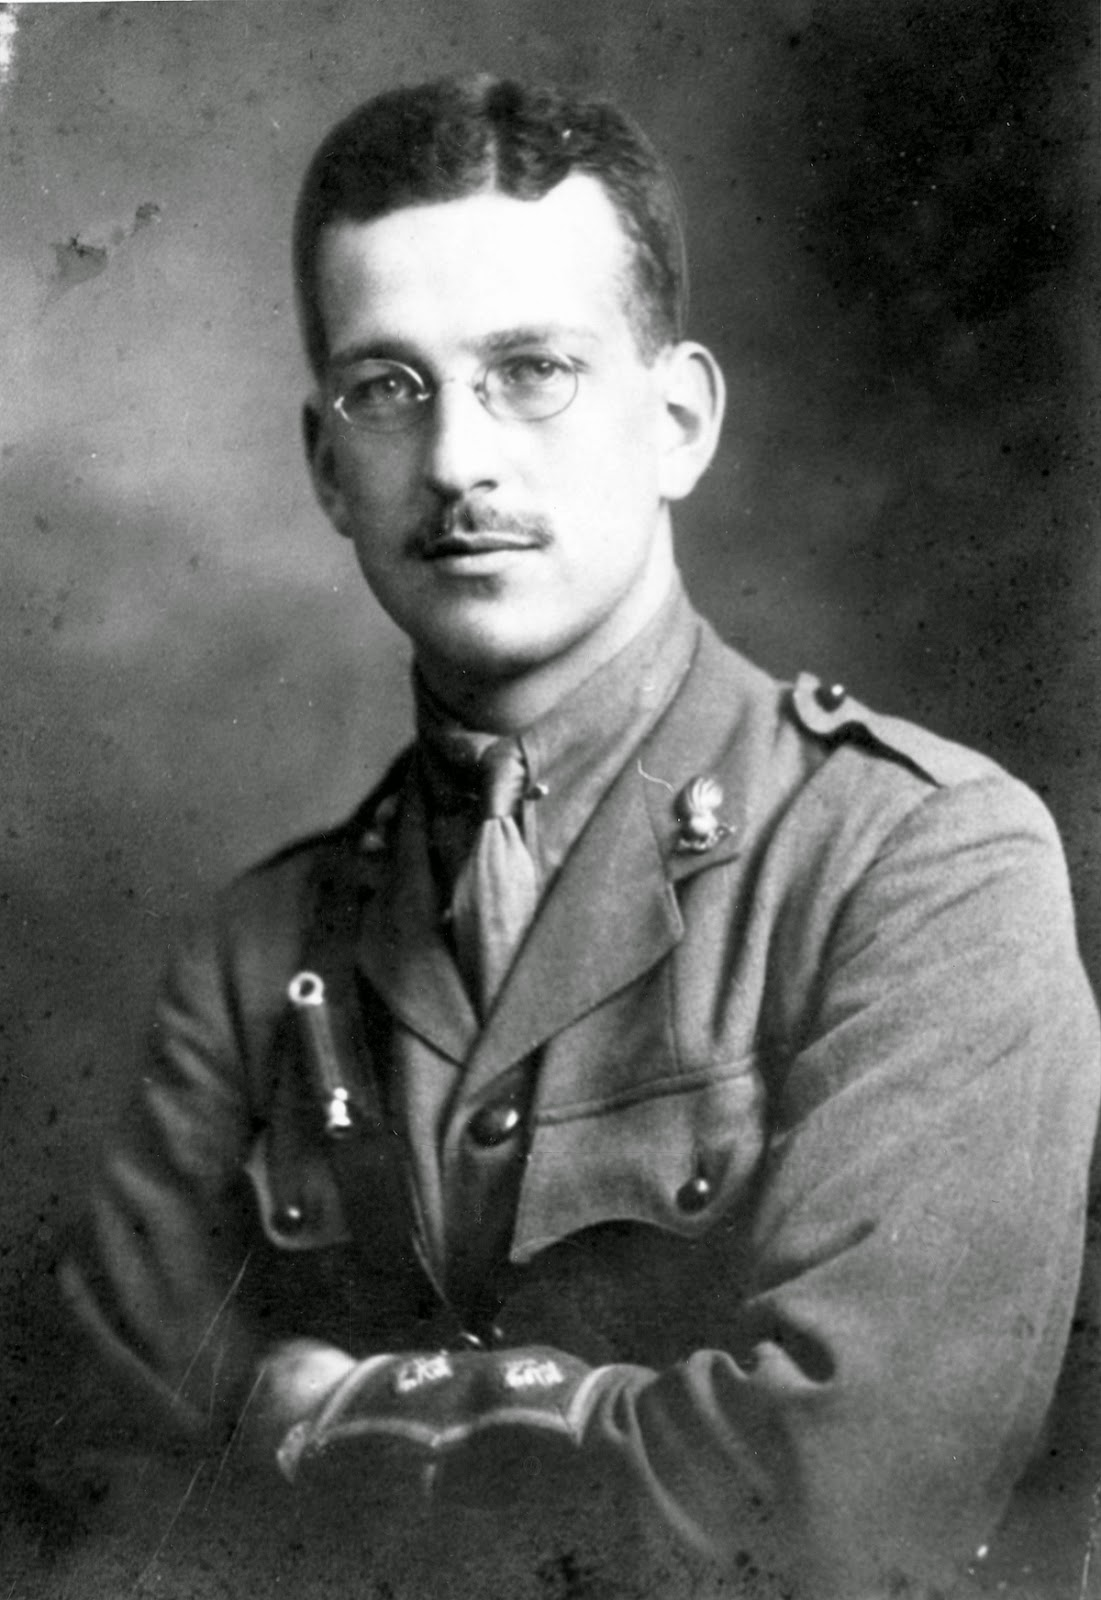 Lieutenant C.R. Magrath Godwin was given command of the first contingent of Lethbridge volunteers to leave the city. He served overseas with the 2nd battery Canadian Field Artillery and was killed in action in Belgium on April 4, 1916.  Courtesy the Galt Museum & Archives: 19841009002